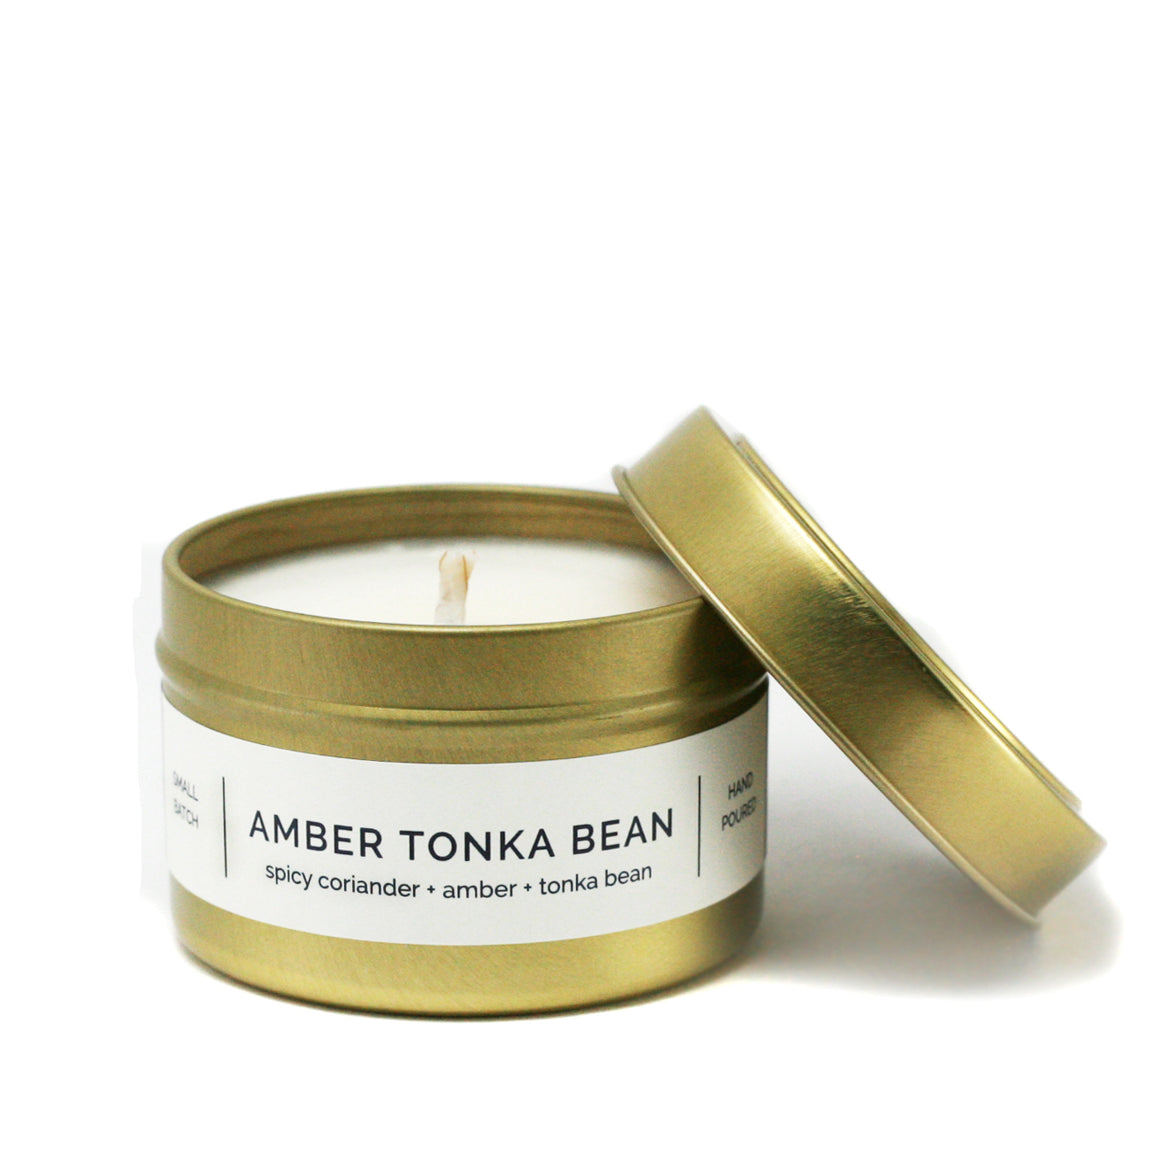 AMBER TONKA BEAN 4 oz Travel Tin Soy Candle